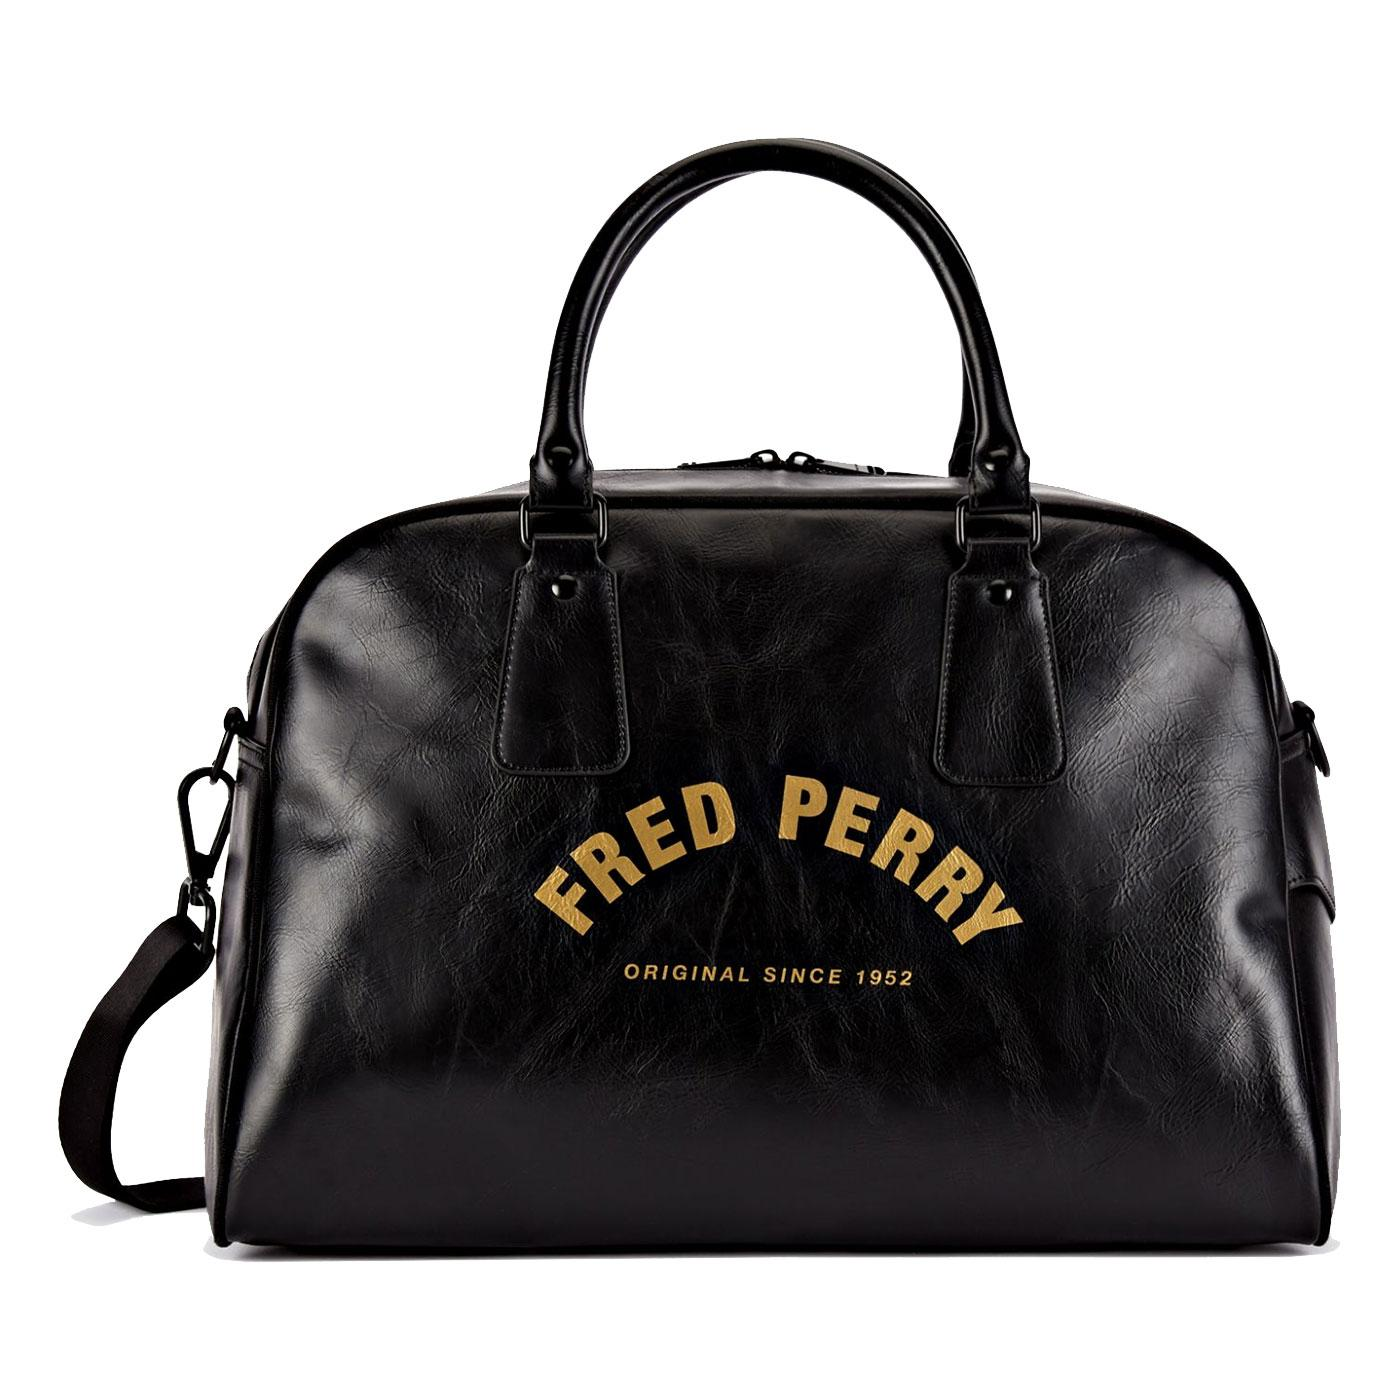 FRED PERRY Retro Arch Branded Bowling Bag BLACK